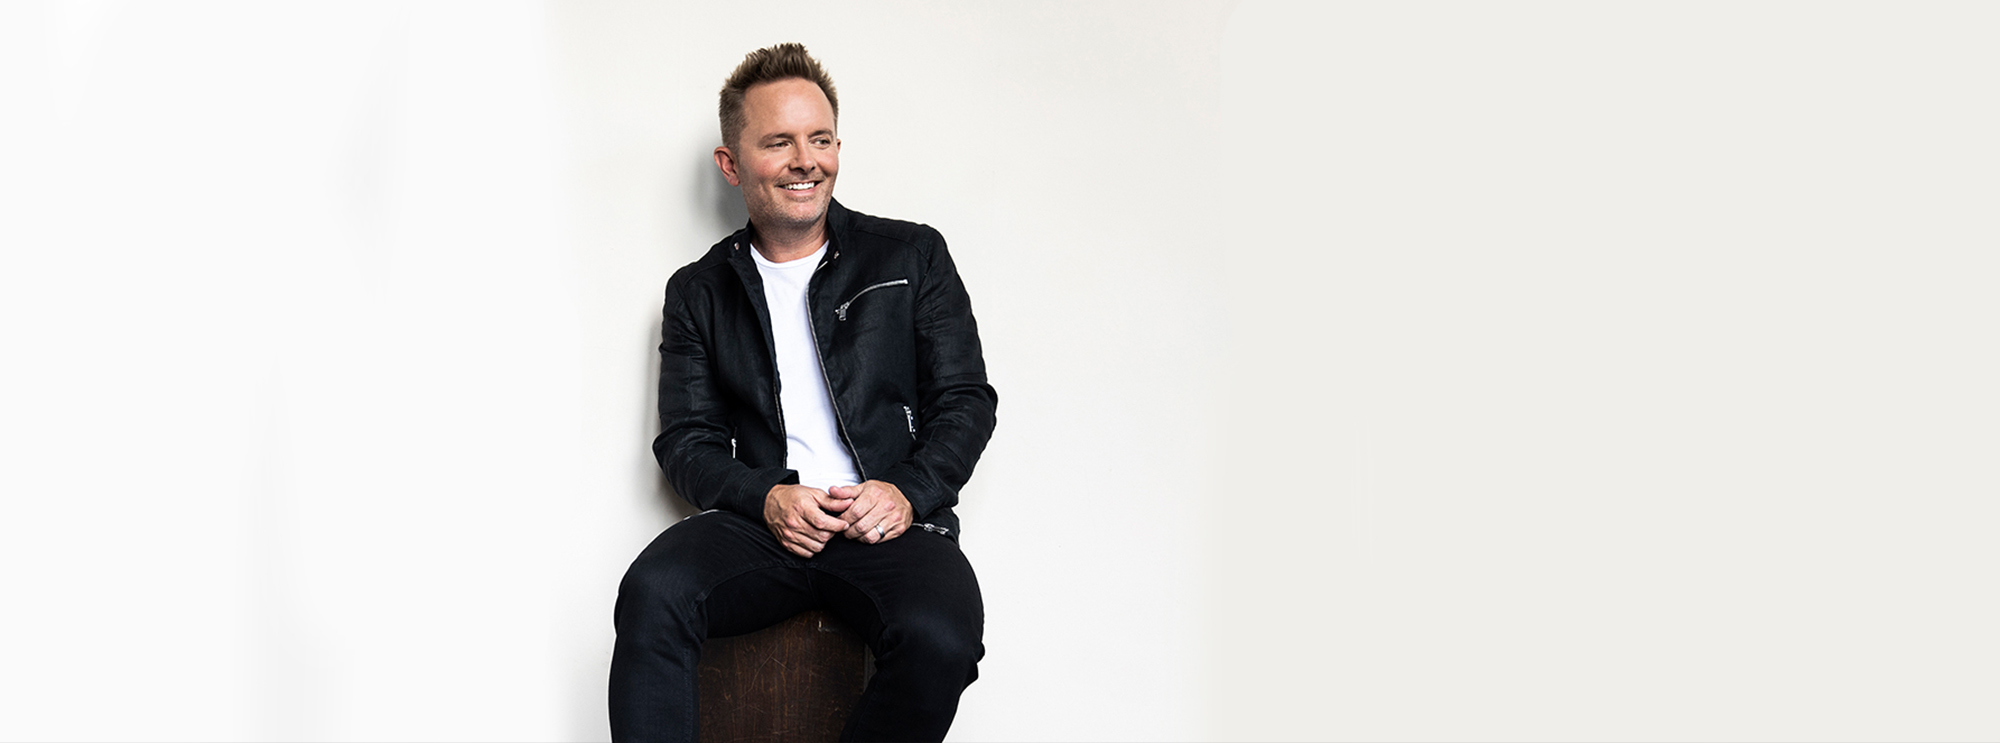 Chris Tomlin (written by Andrew Peterson, Ben Shive)